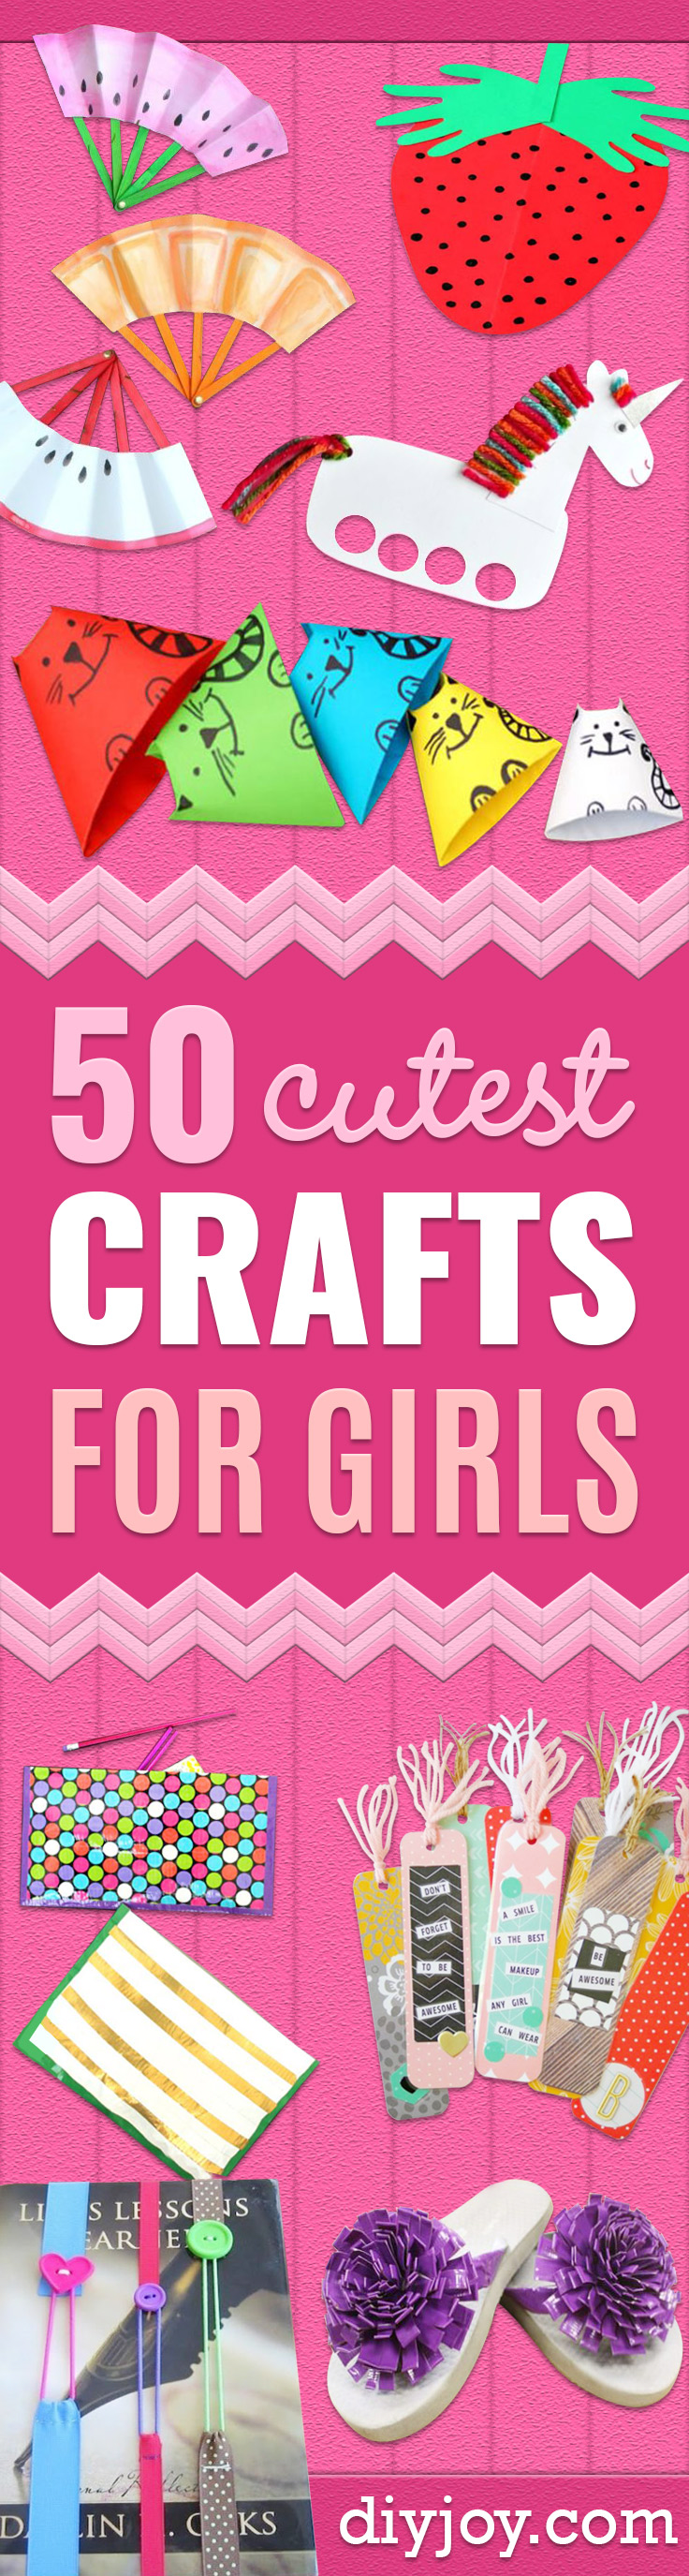 Crafts for Girls - Cute Crafts for Young Girls, Toddlers and School Children - Fun Paints to Make, Arts and Craft Ideas, Wall Art Projects, Colorful Alphabet and Glue Crafts, String Art, Painting Lessons, Cheap Project Tutorials and Inexpensive Things for Kids to Make at Home - Cute Room Decor and DIY Gifts to Make for Mom and Dad http://diyjoy.com/crafts-for-girls